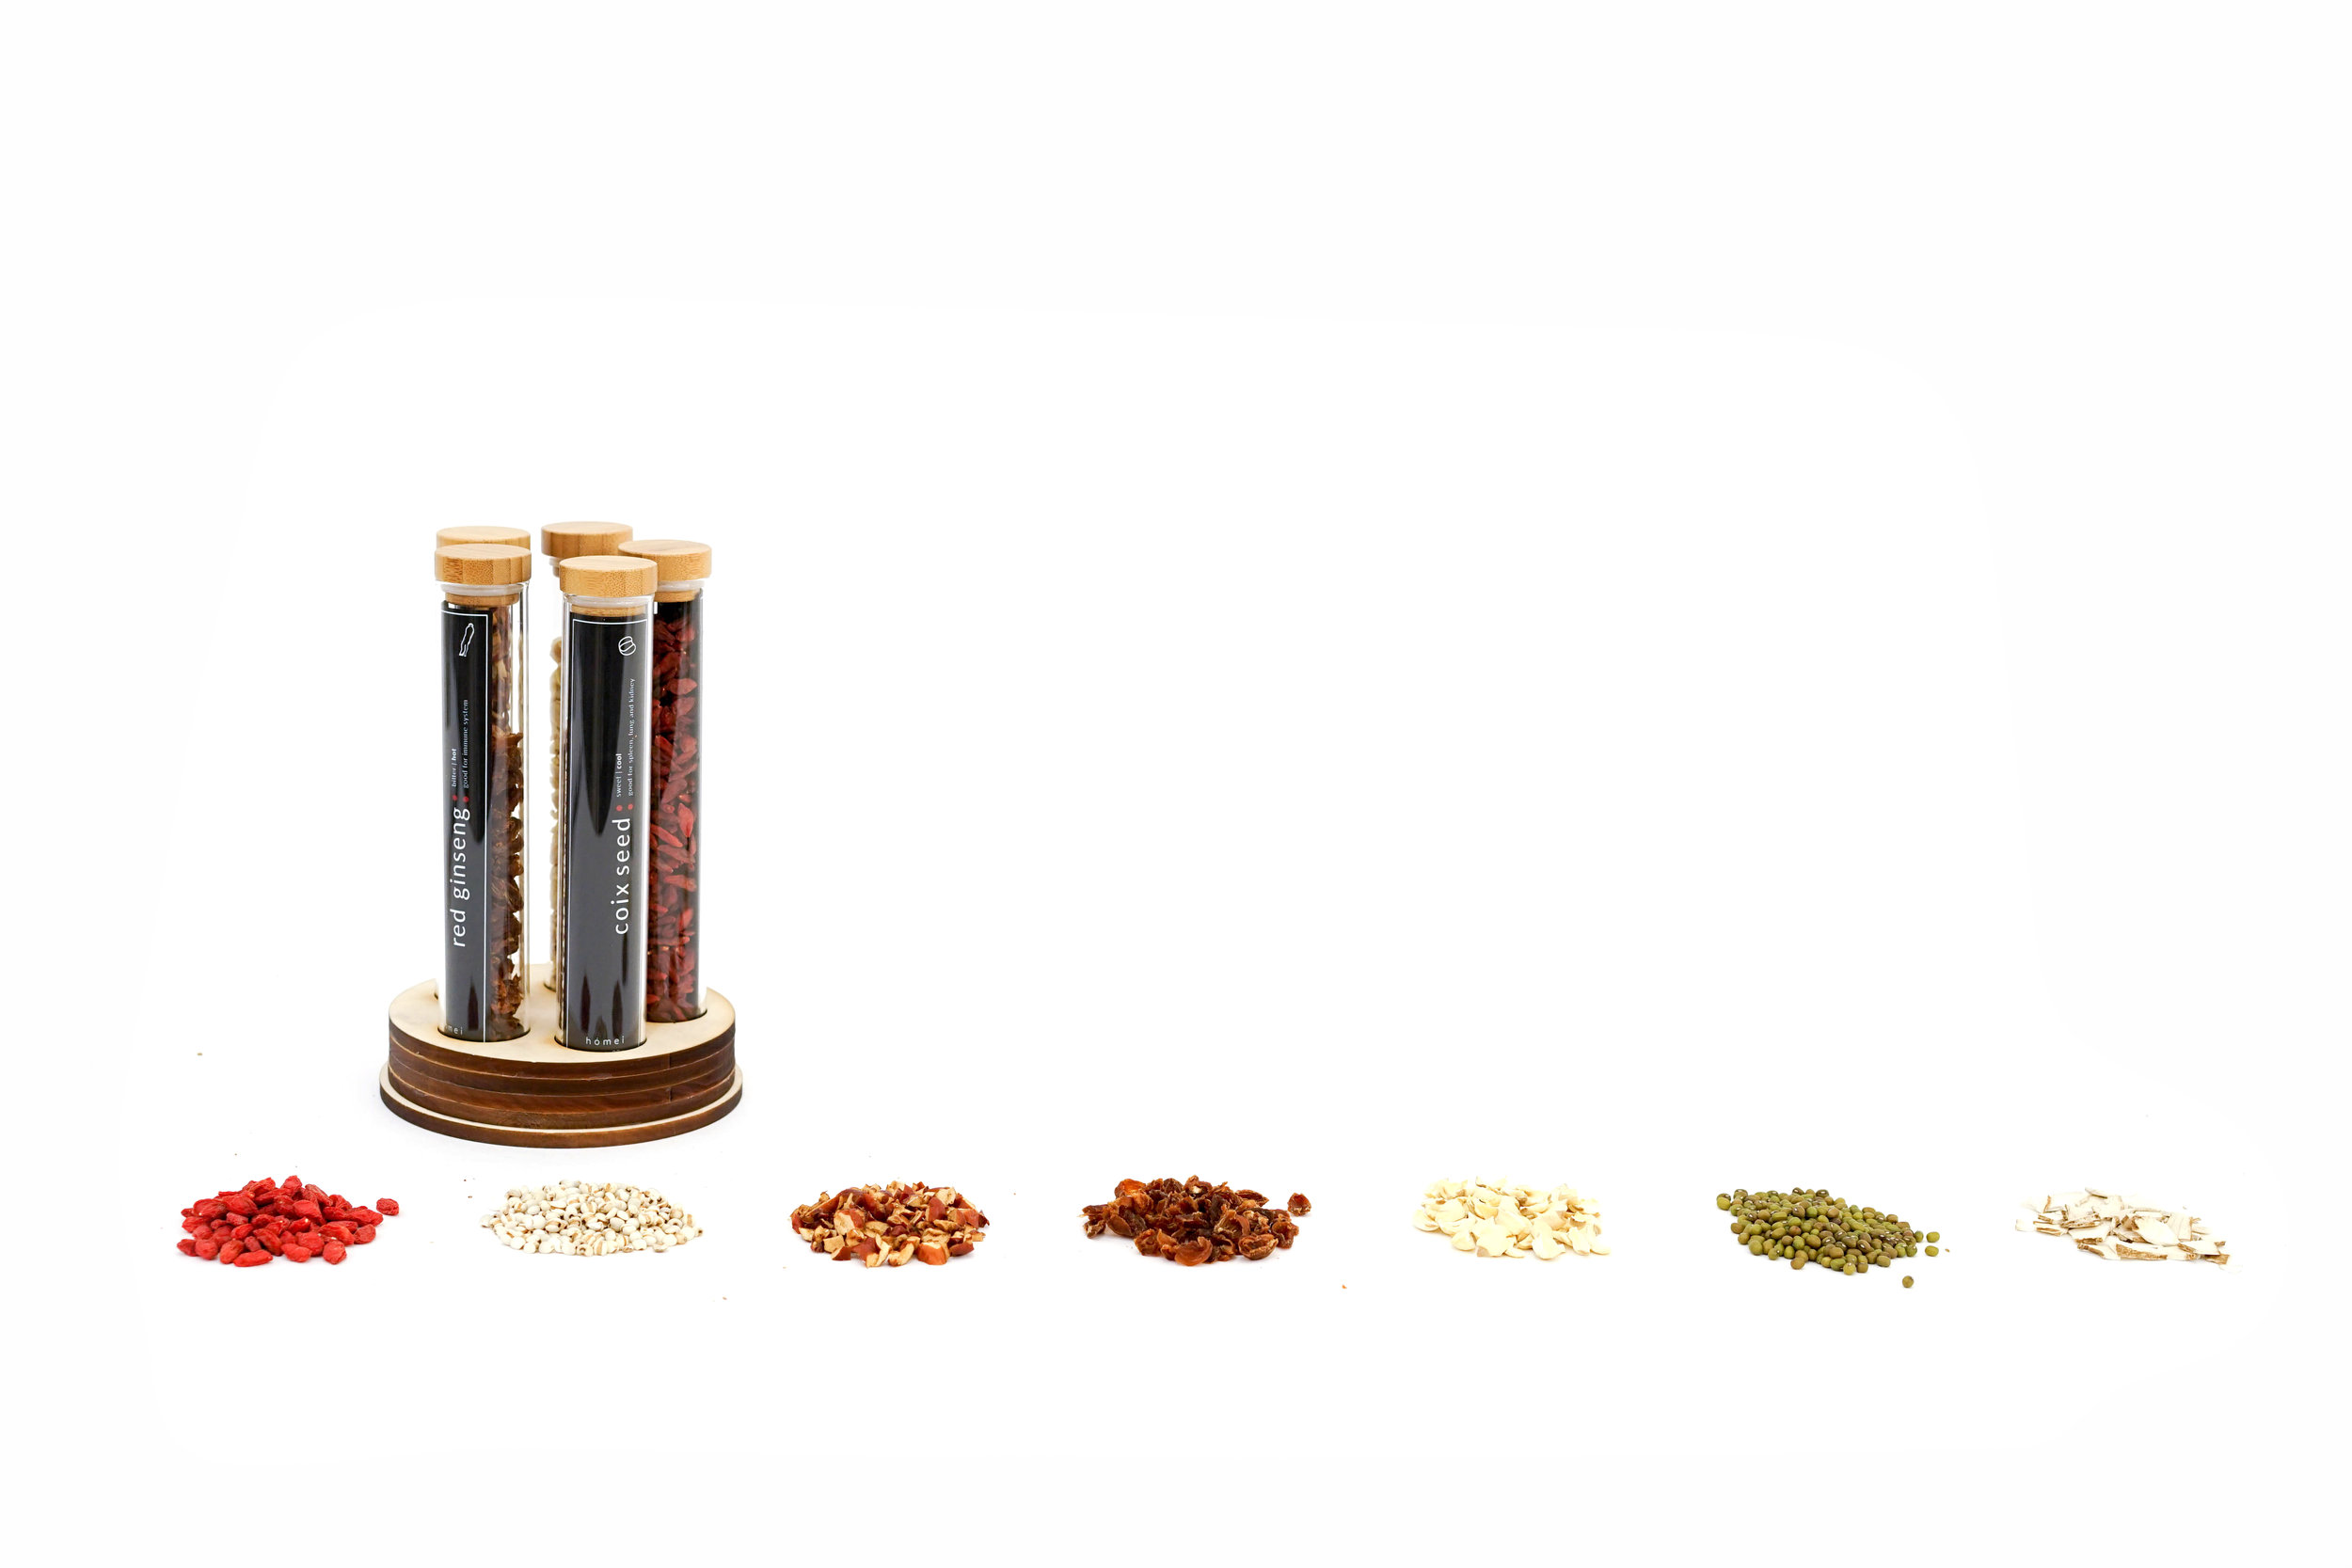 hómei: Dried Herbs For Chinese Soup / World Brand Design Society